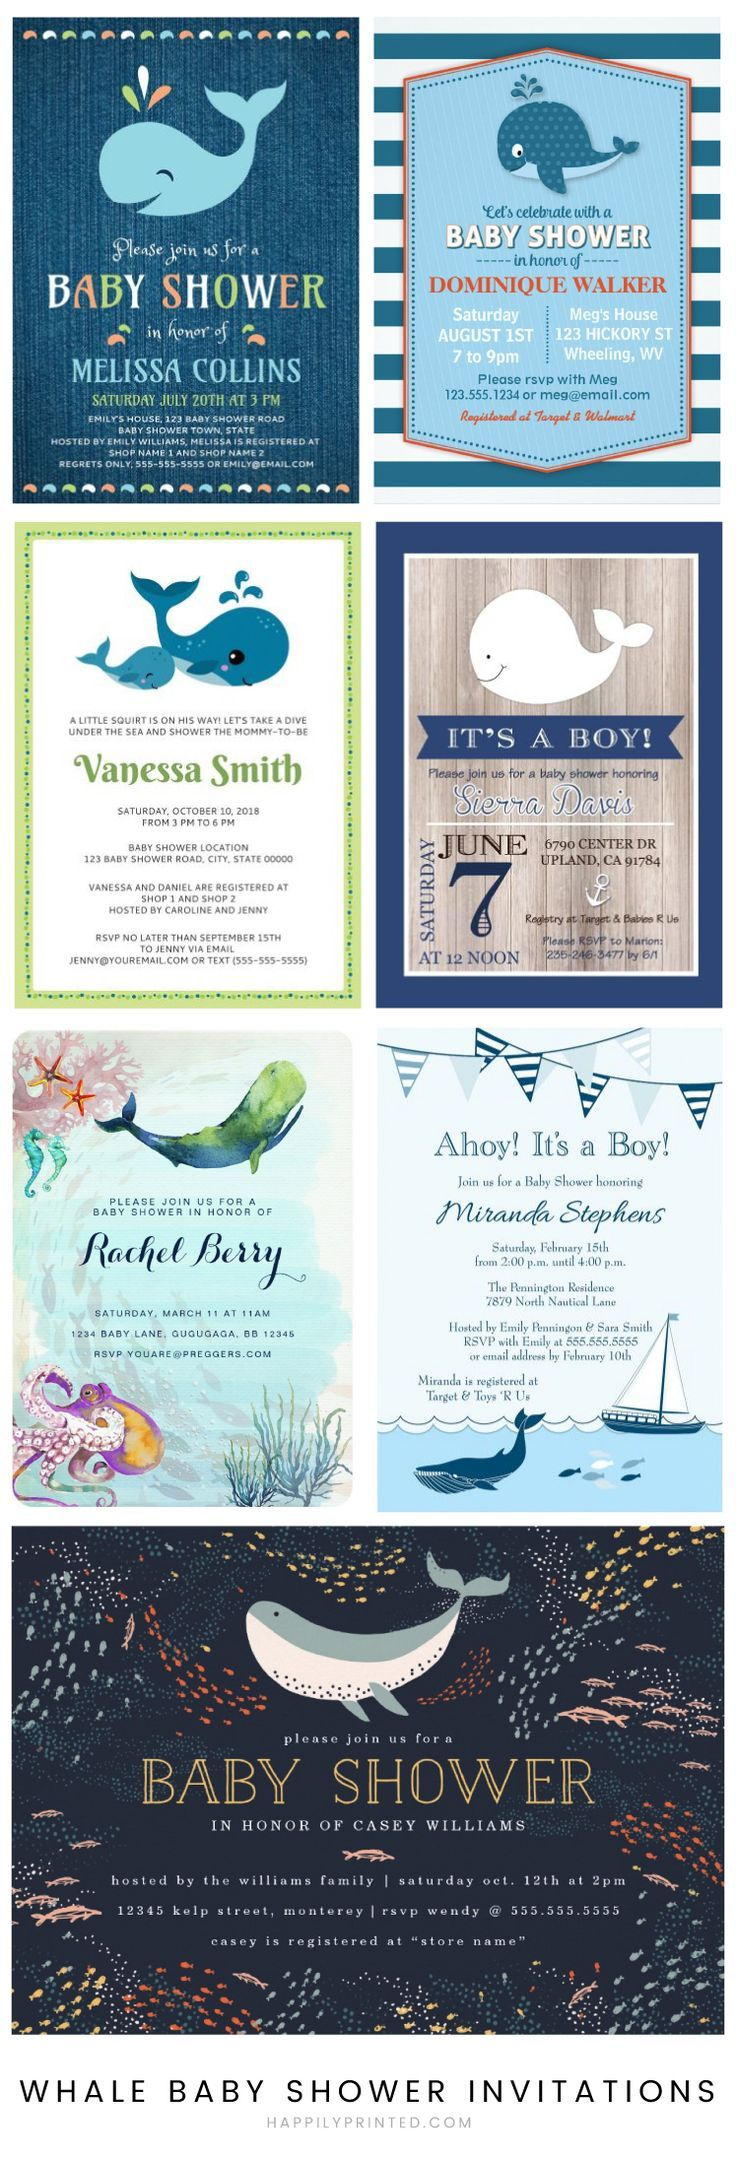 Best 25+ Boy shower invitations ideas on Pinterest | Baby boy ...